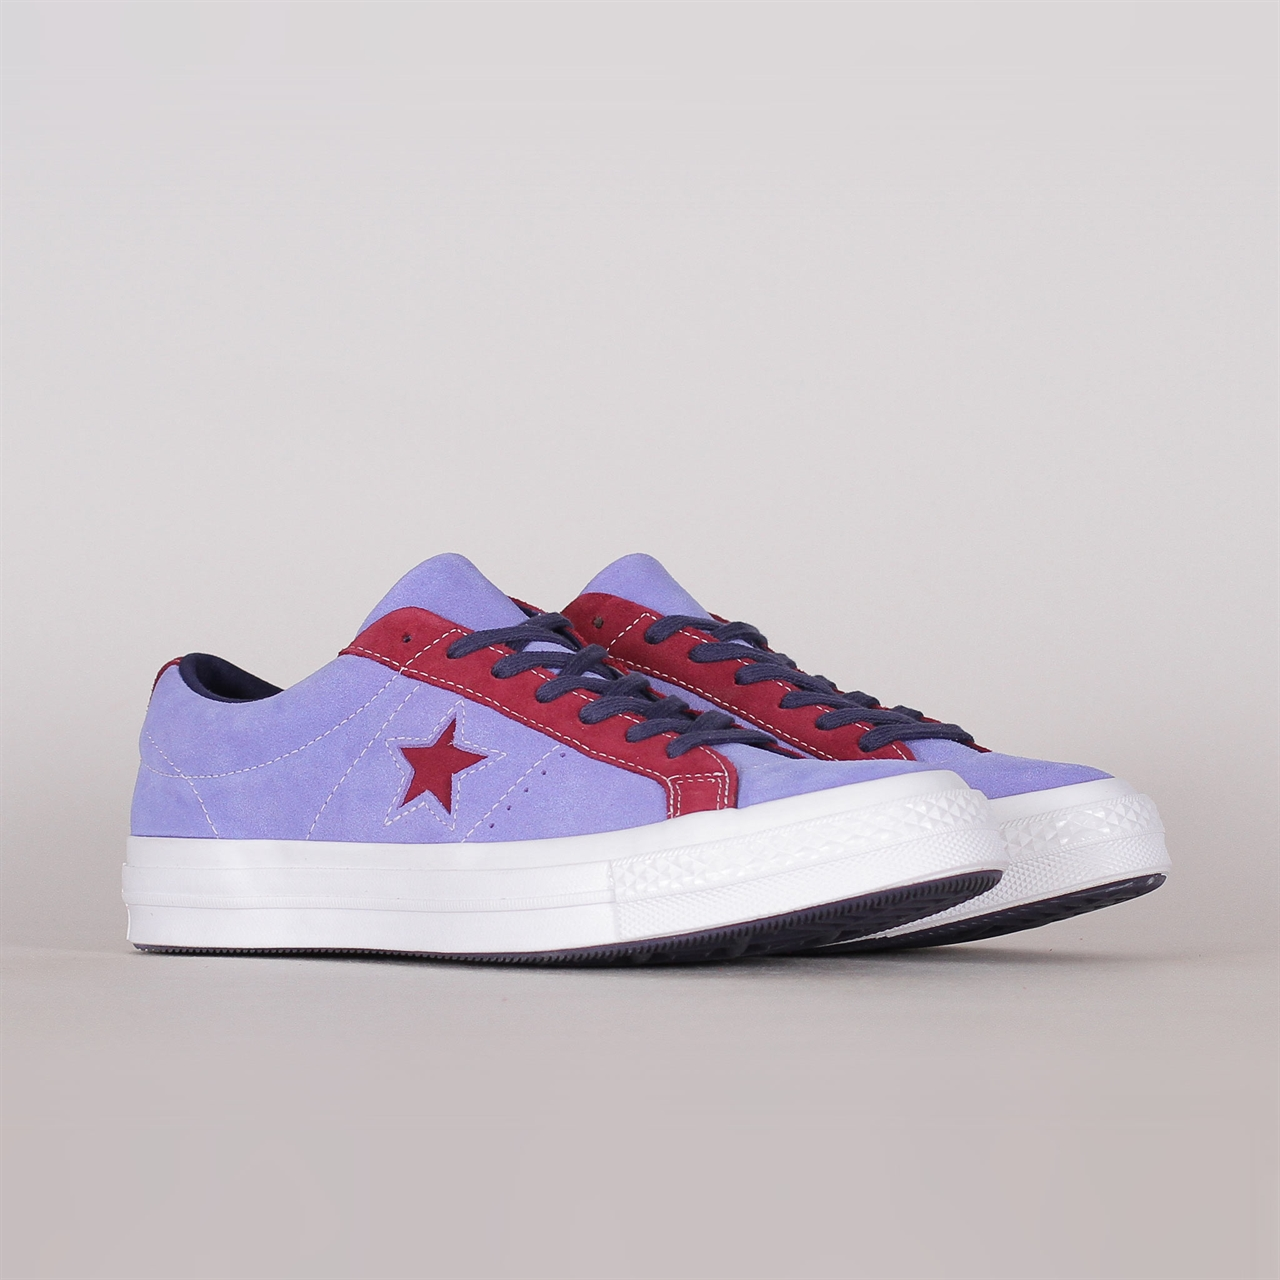 e16d3c3384b Shelta - Converse One Star OX ´Carnival Pack´ (161618C)